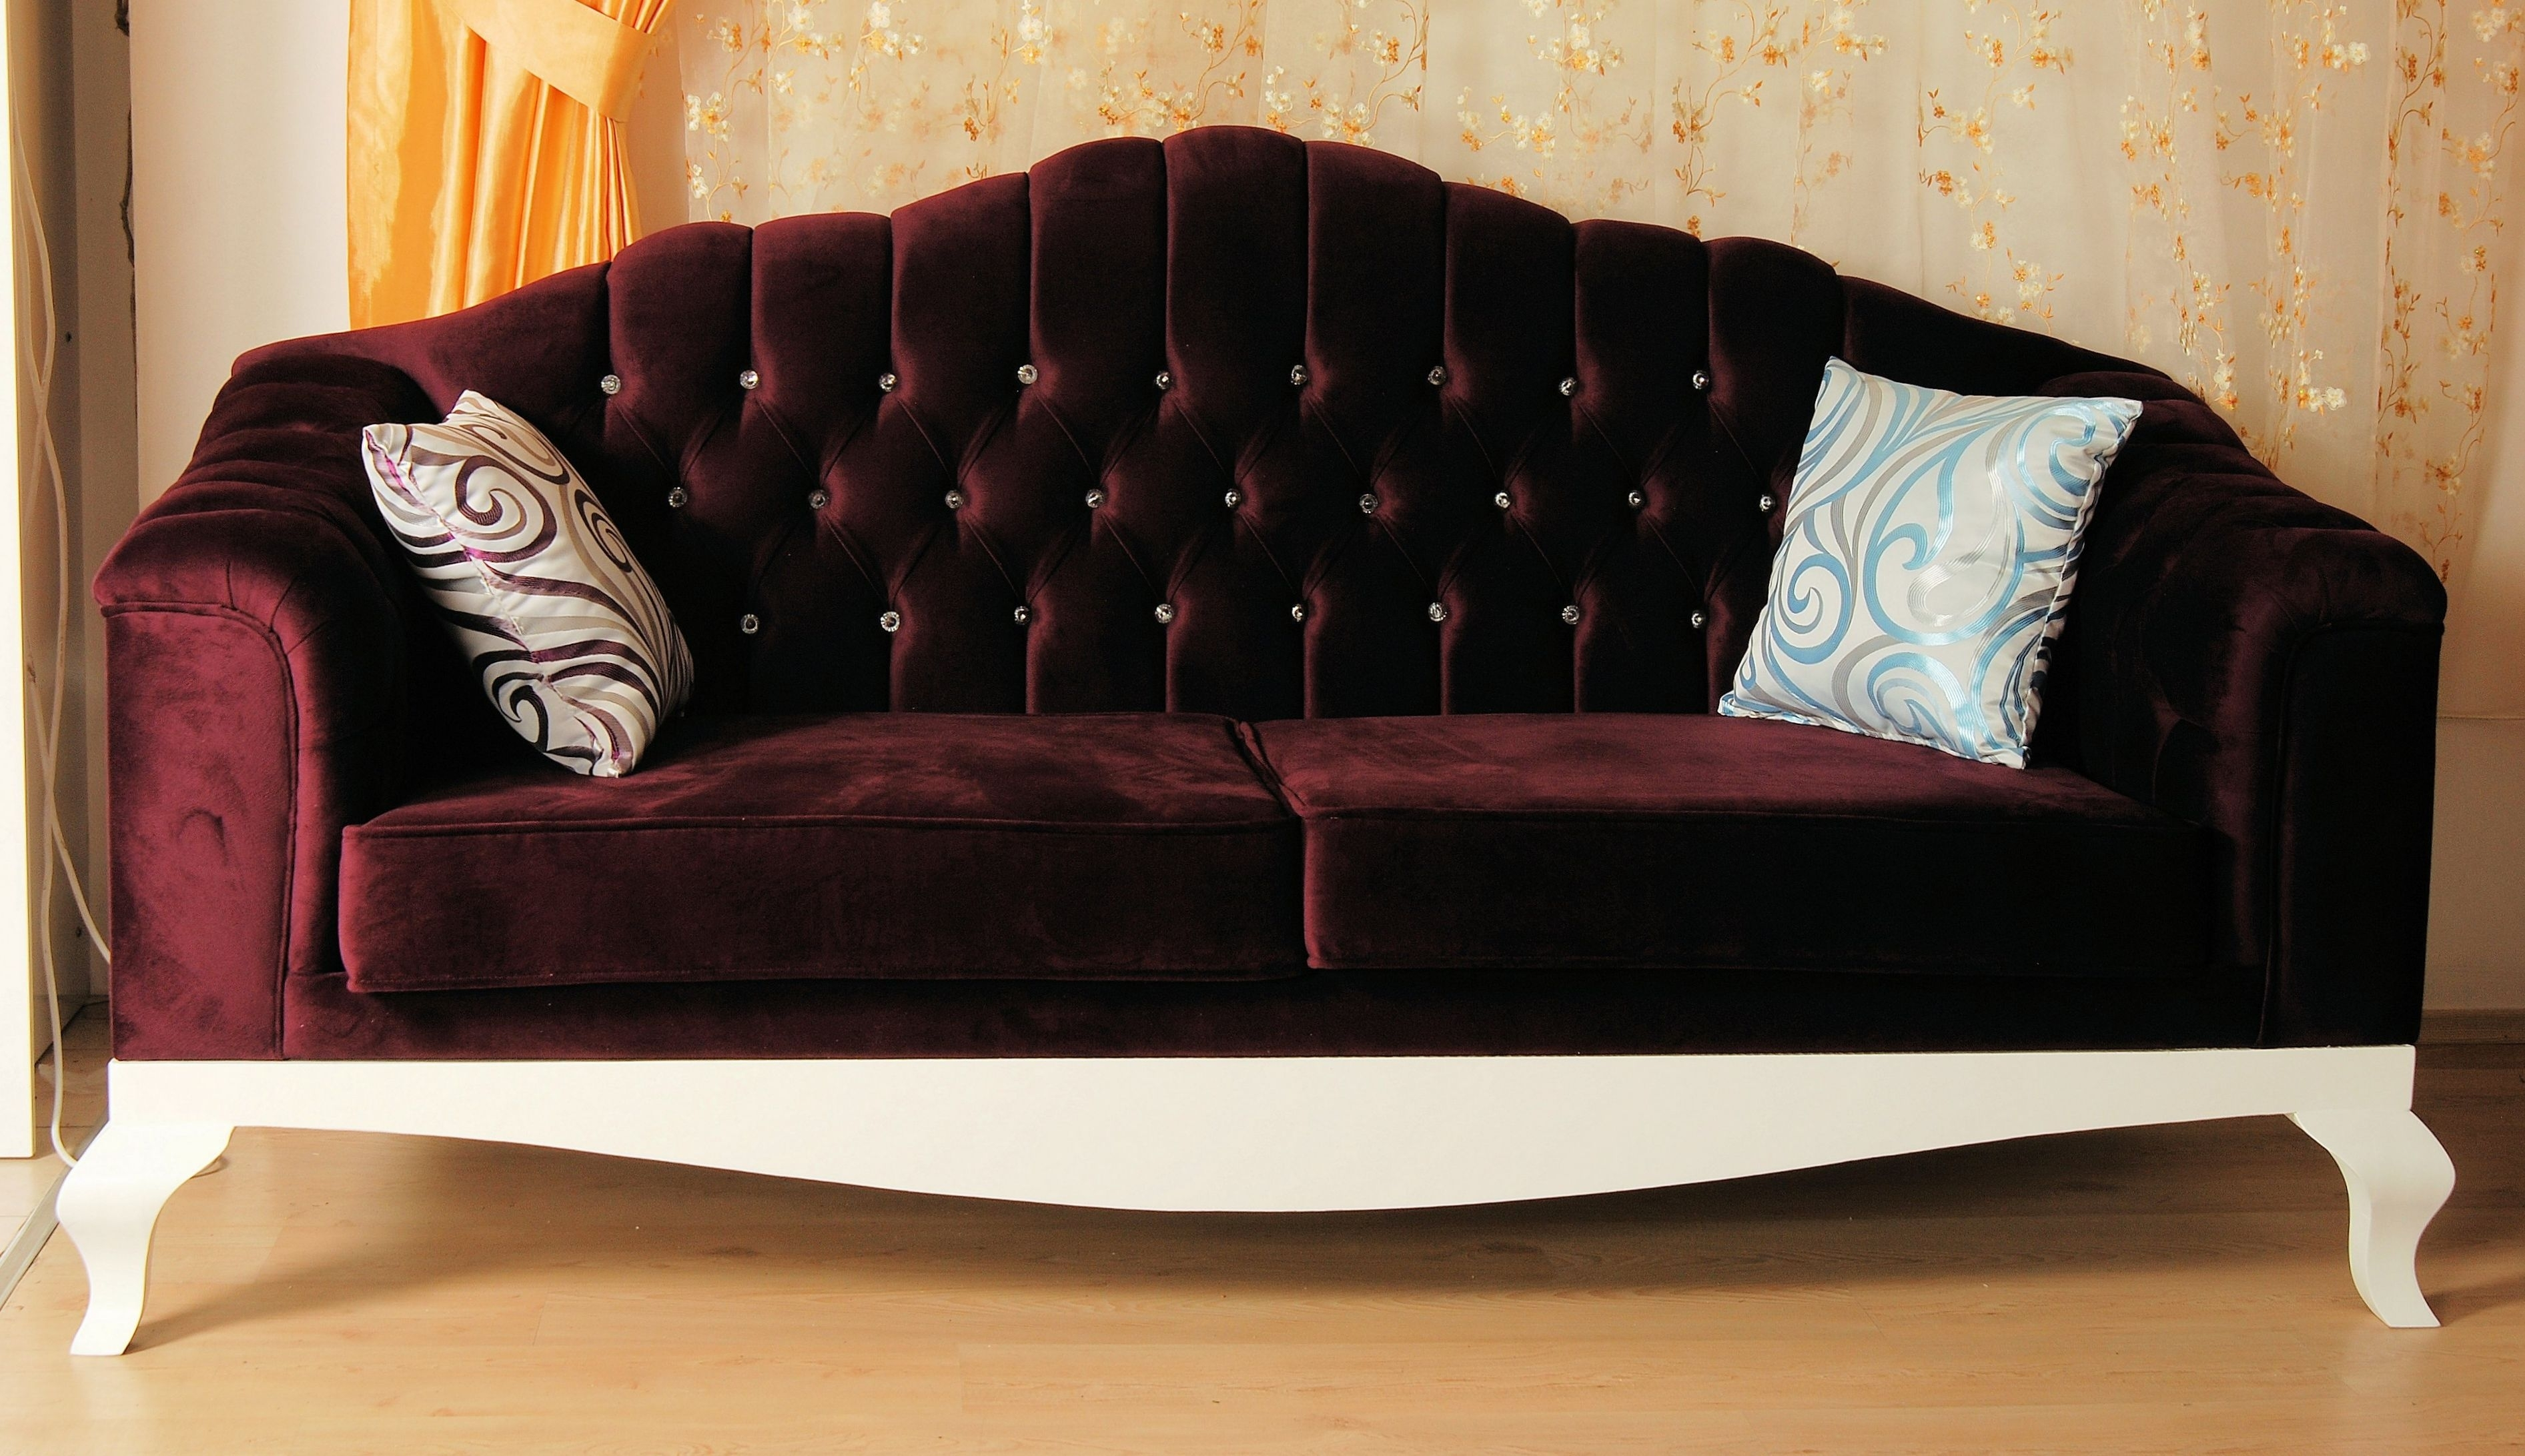 Sofa Design: Personal Luxury Sofas Taste And Style May Be Classic pertaining to Luxury Sofas (Image 9 of 10)